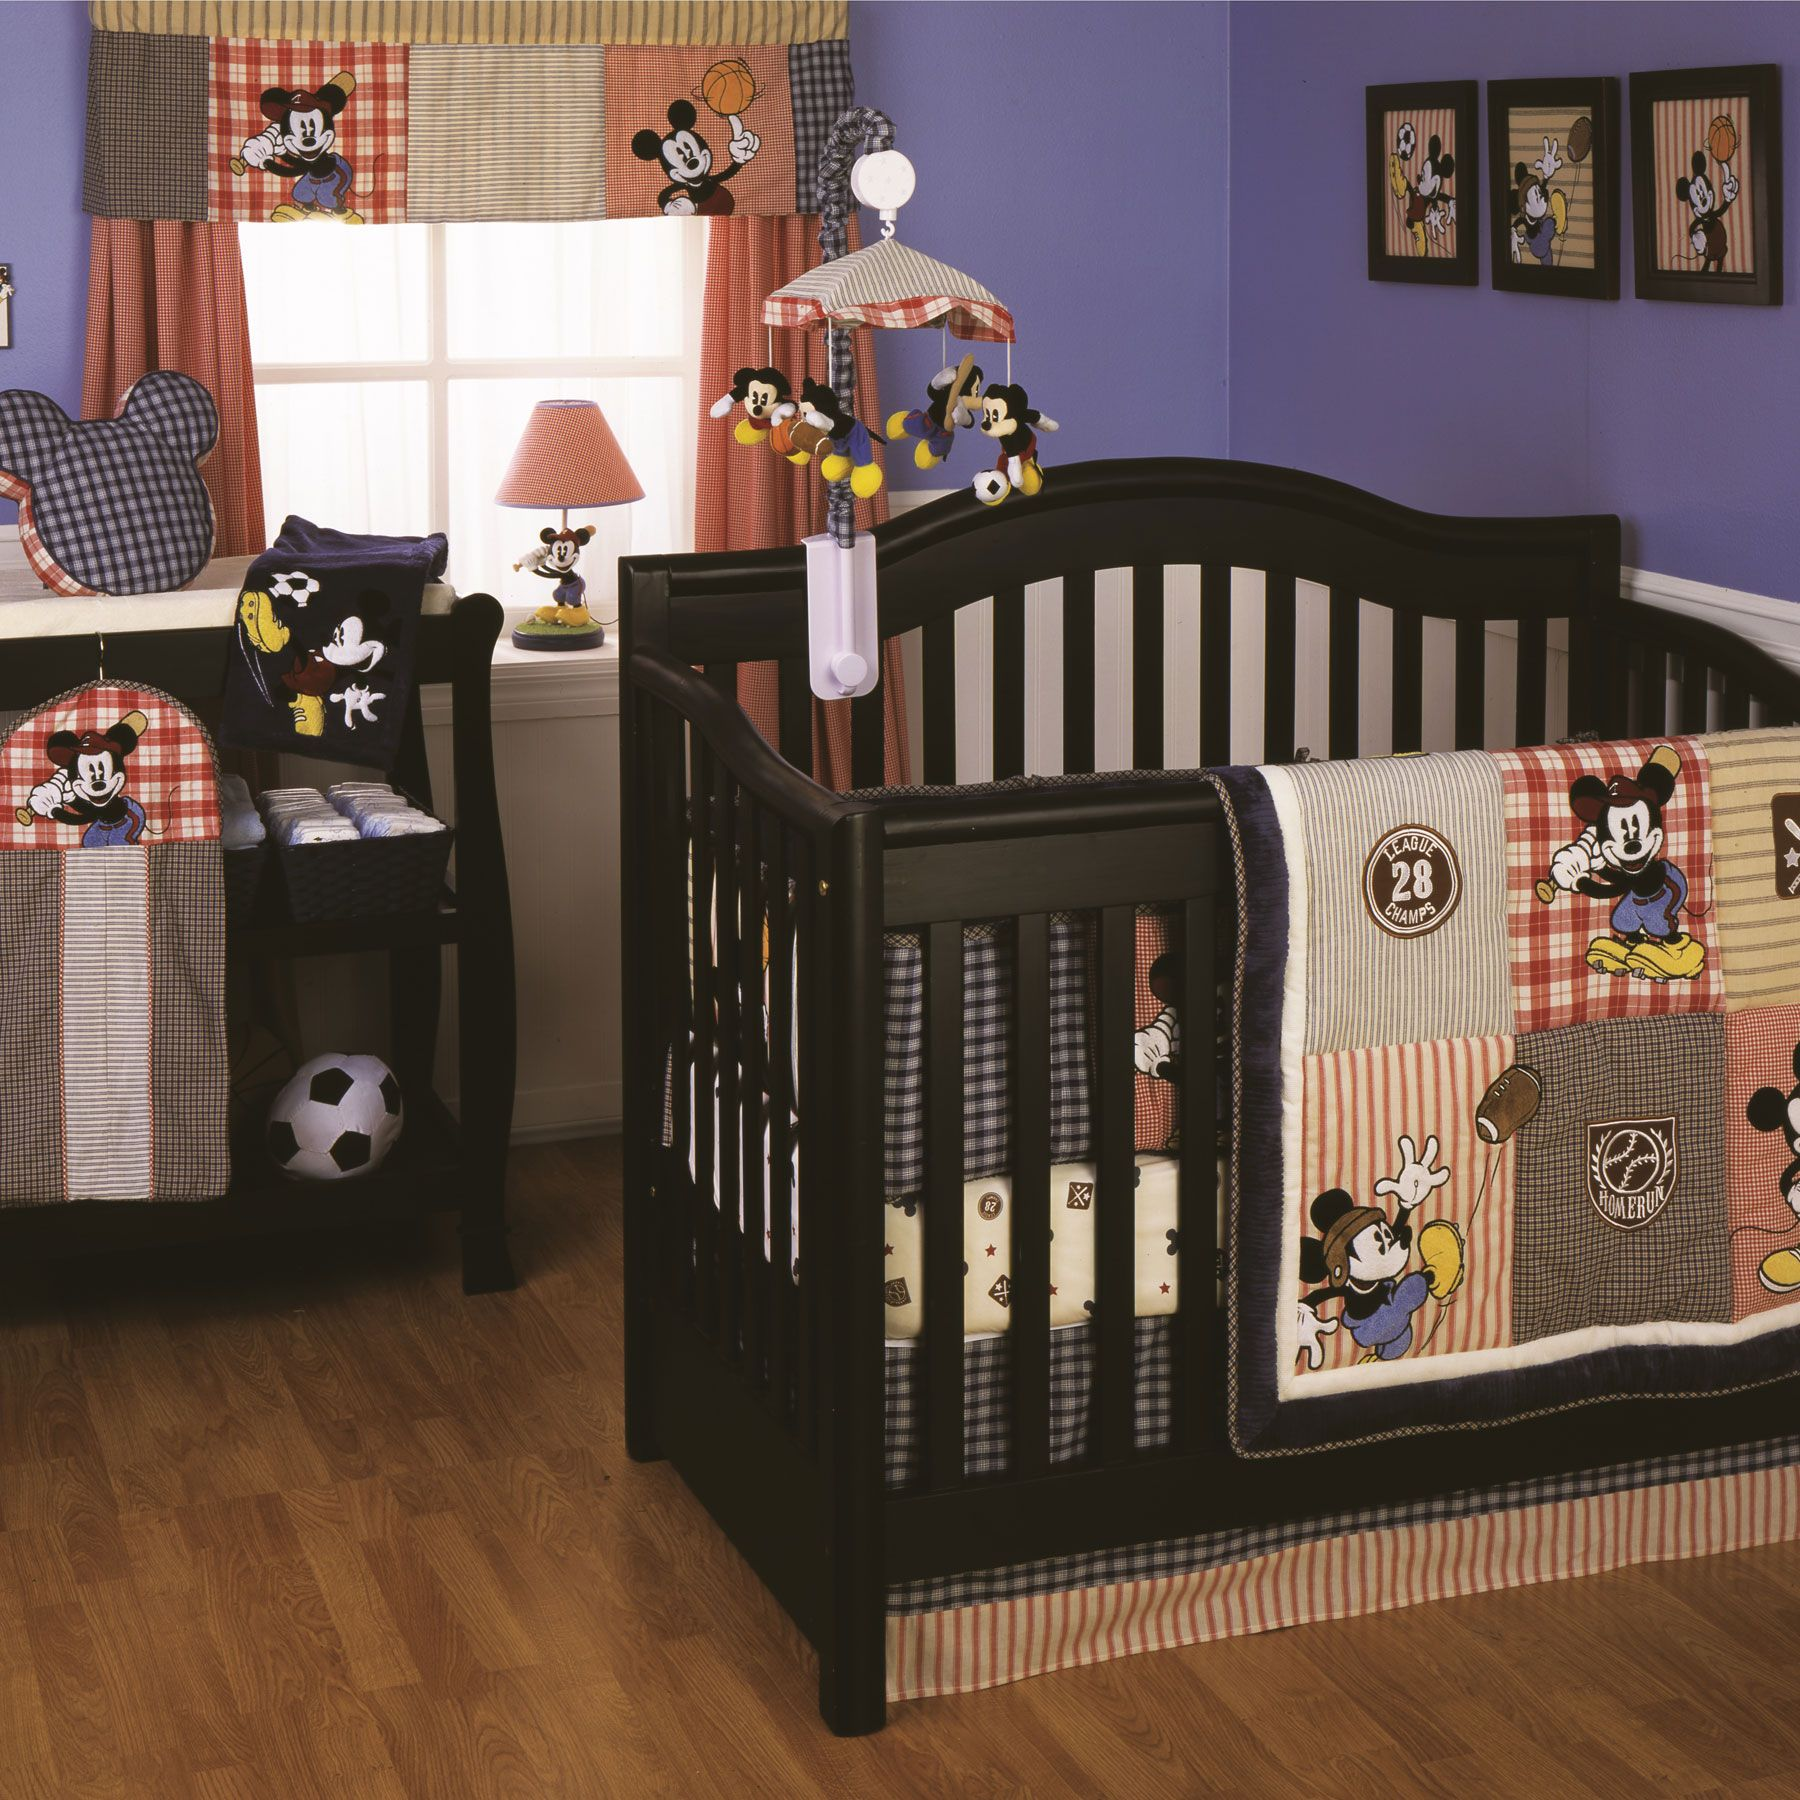 9b2baba65d This vintage style 4-piece crib bedding set showcases Mickey Mouse showing  off his athletic skills! Coordinates with the Vintage Mickey crib bedding  ...